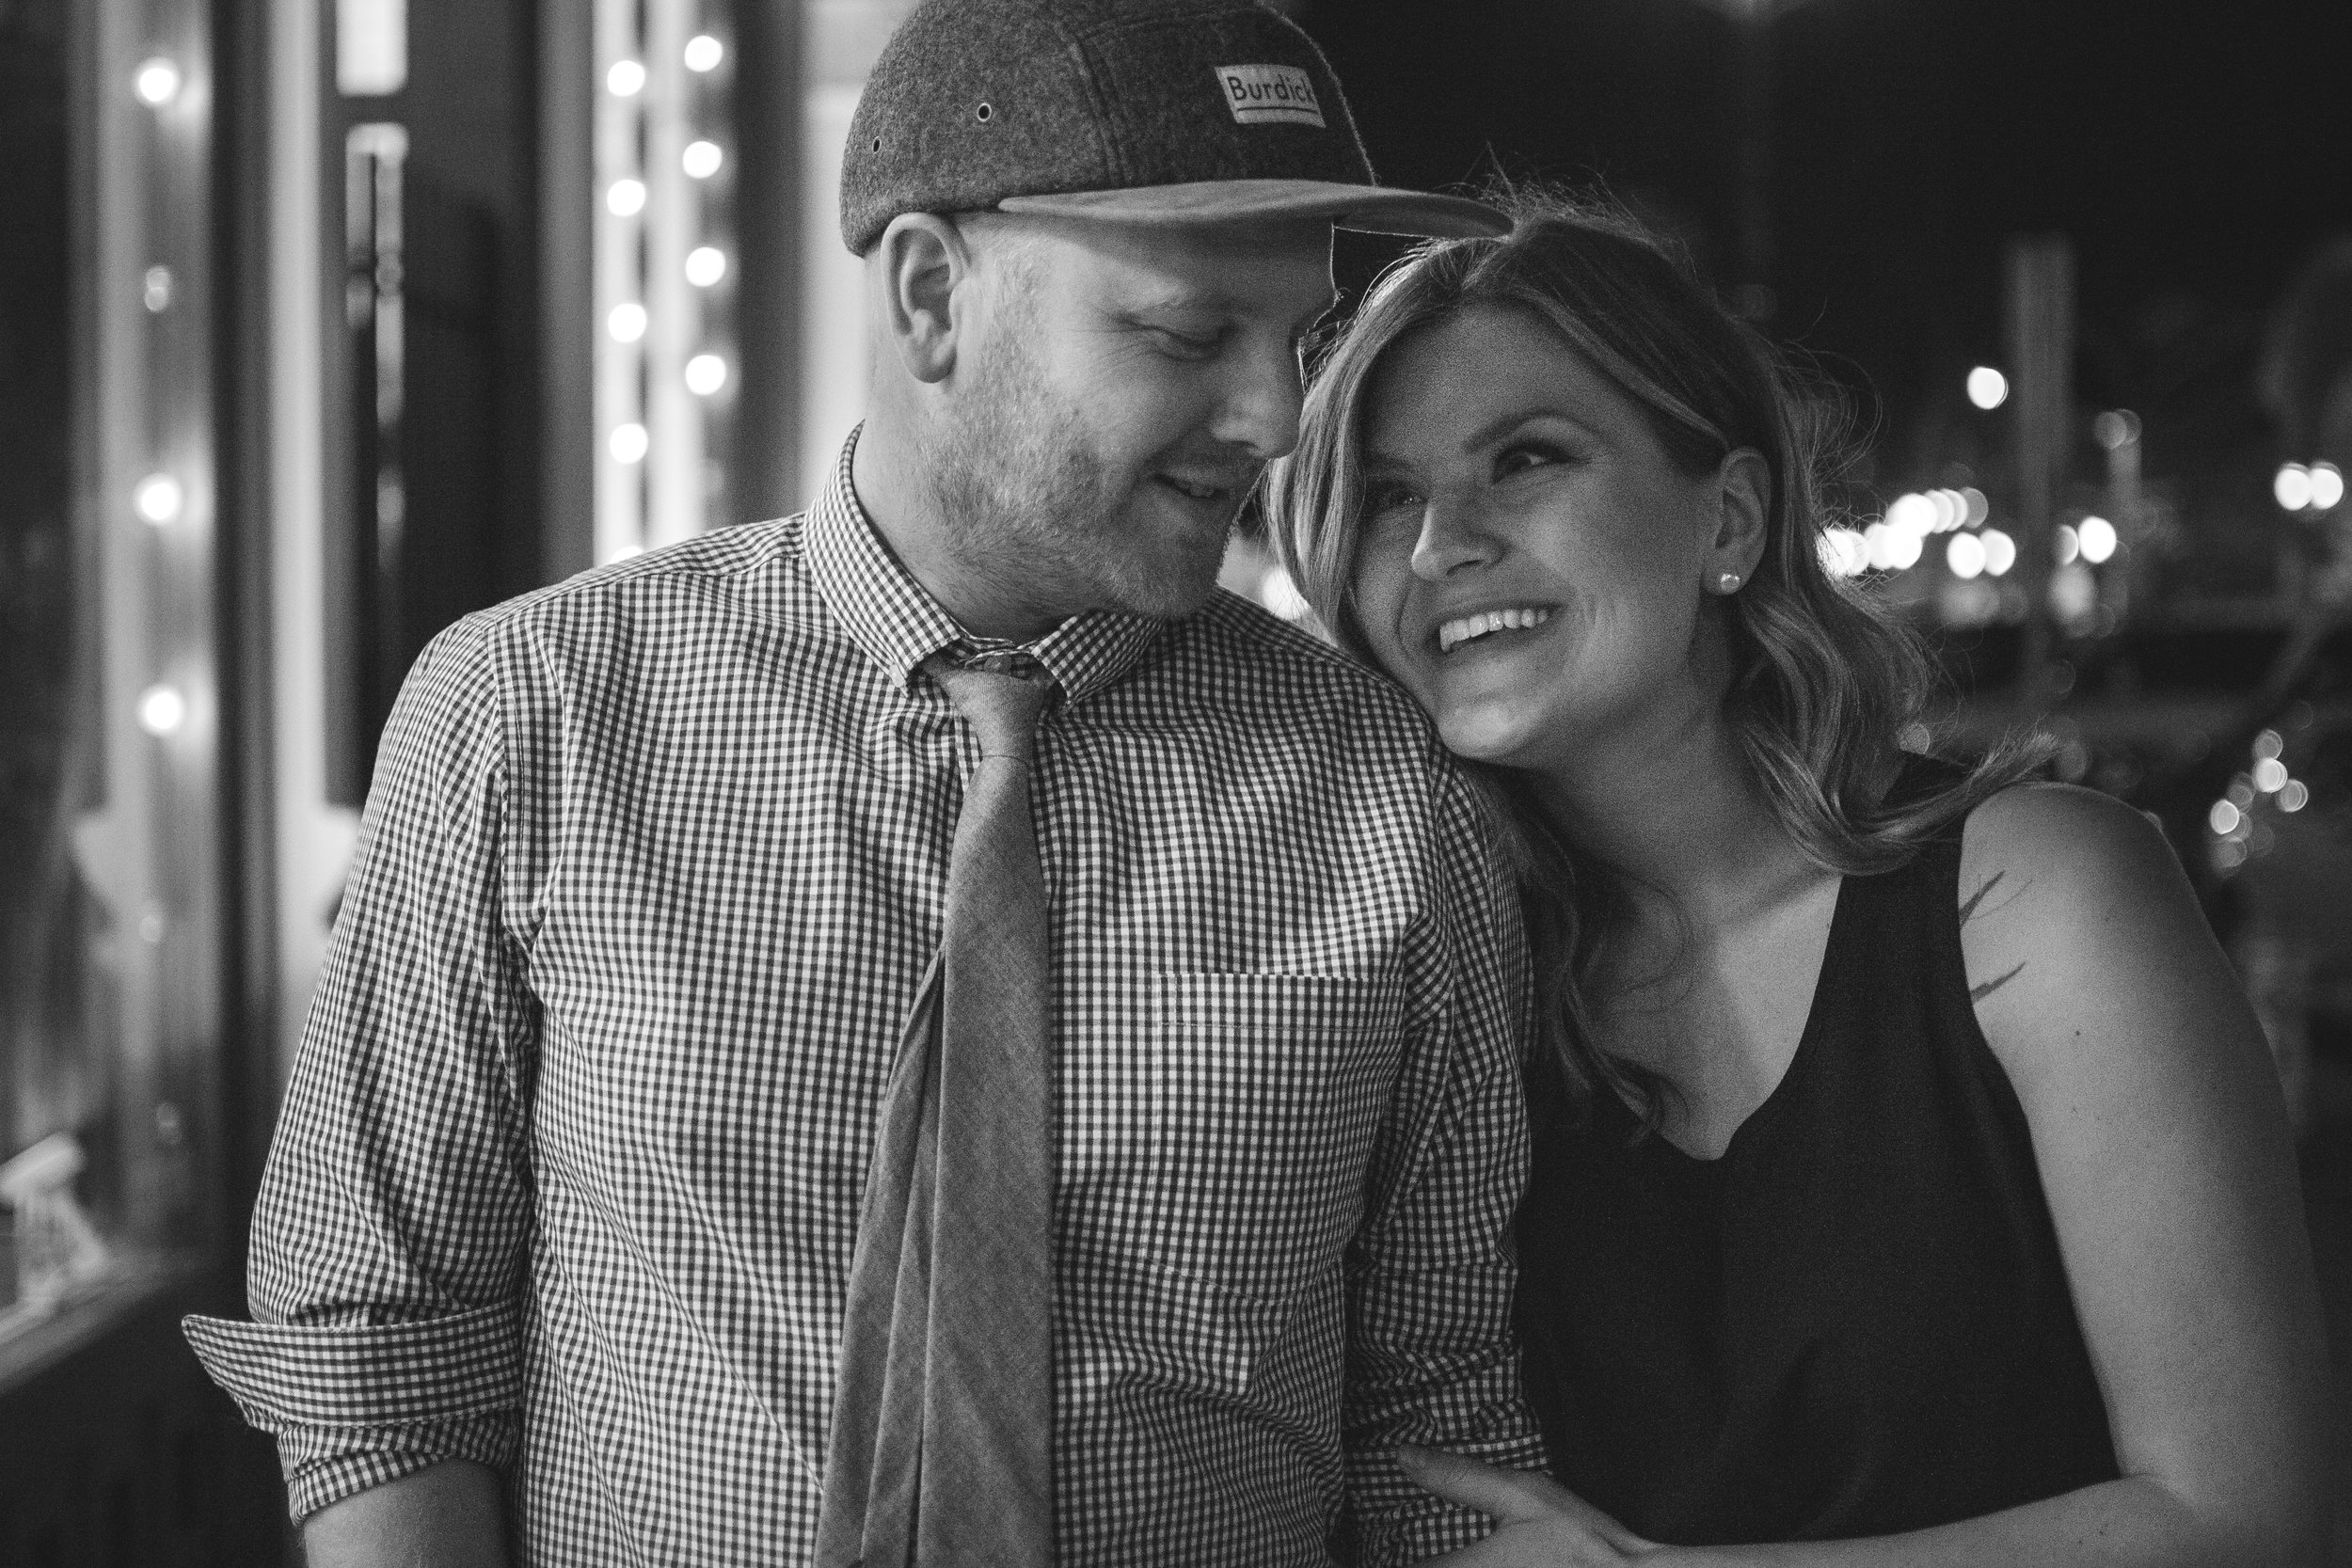 I thought it would be fun to share this engagement photo of Max and I in downtown Tacoma, taken by my ever-so-talented older sister, Christina Vanvranken. Max inspires me everyday with his work ethic, encouragement and amazing cooking!